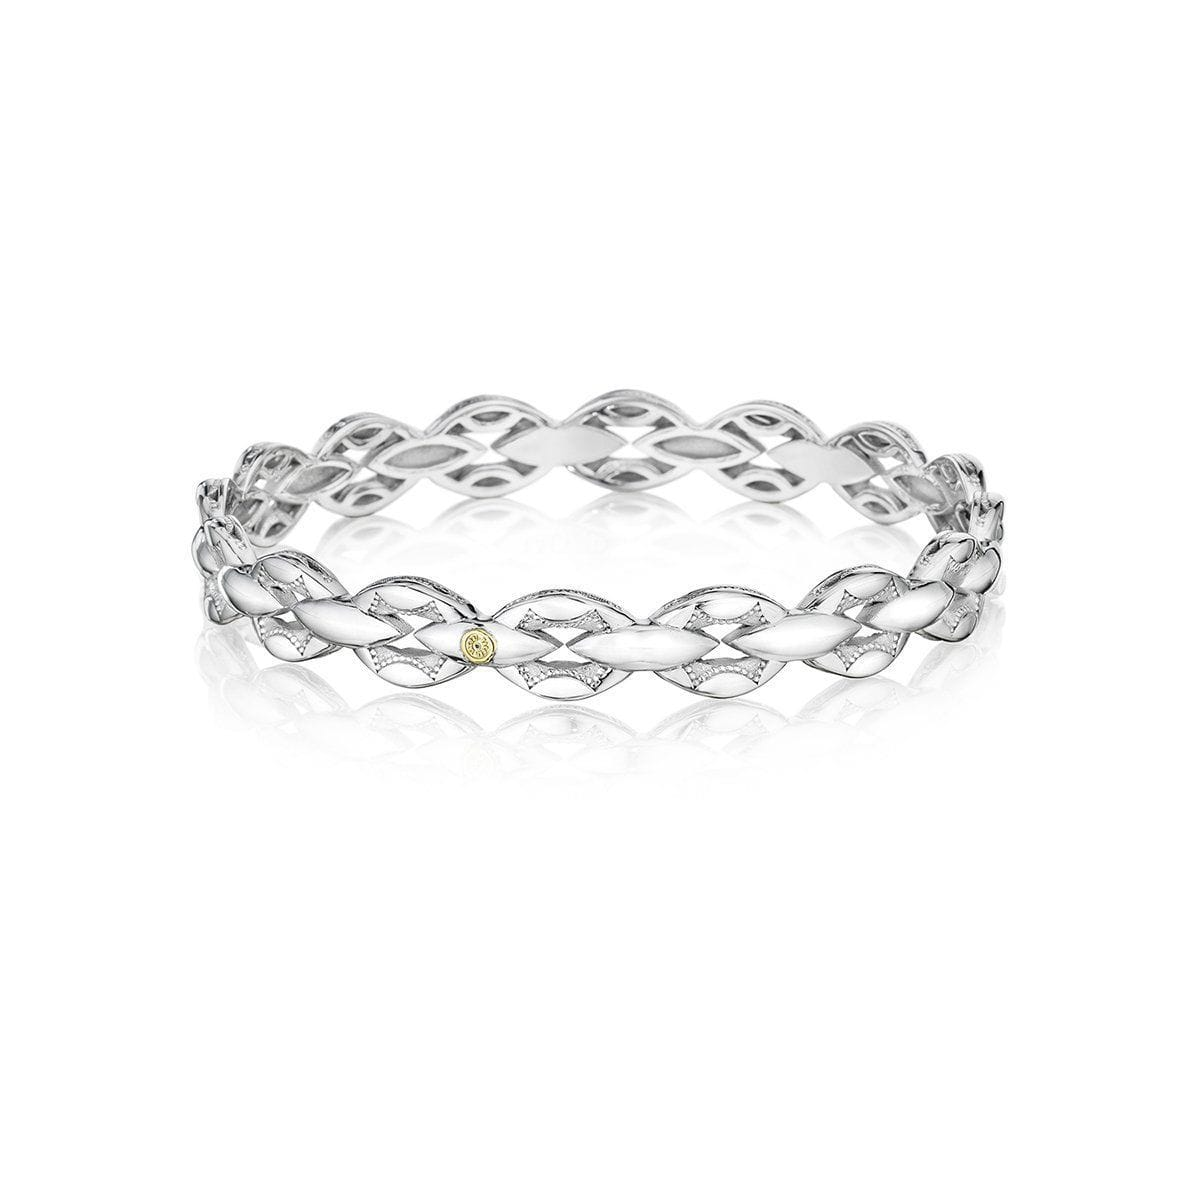 Silver Slip On Bangle - SB189-Tacori-Renee Taylor Gallery